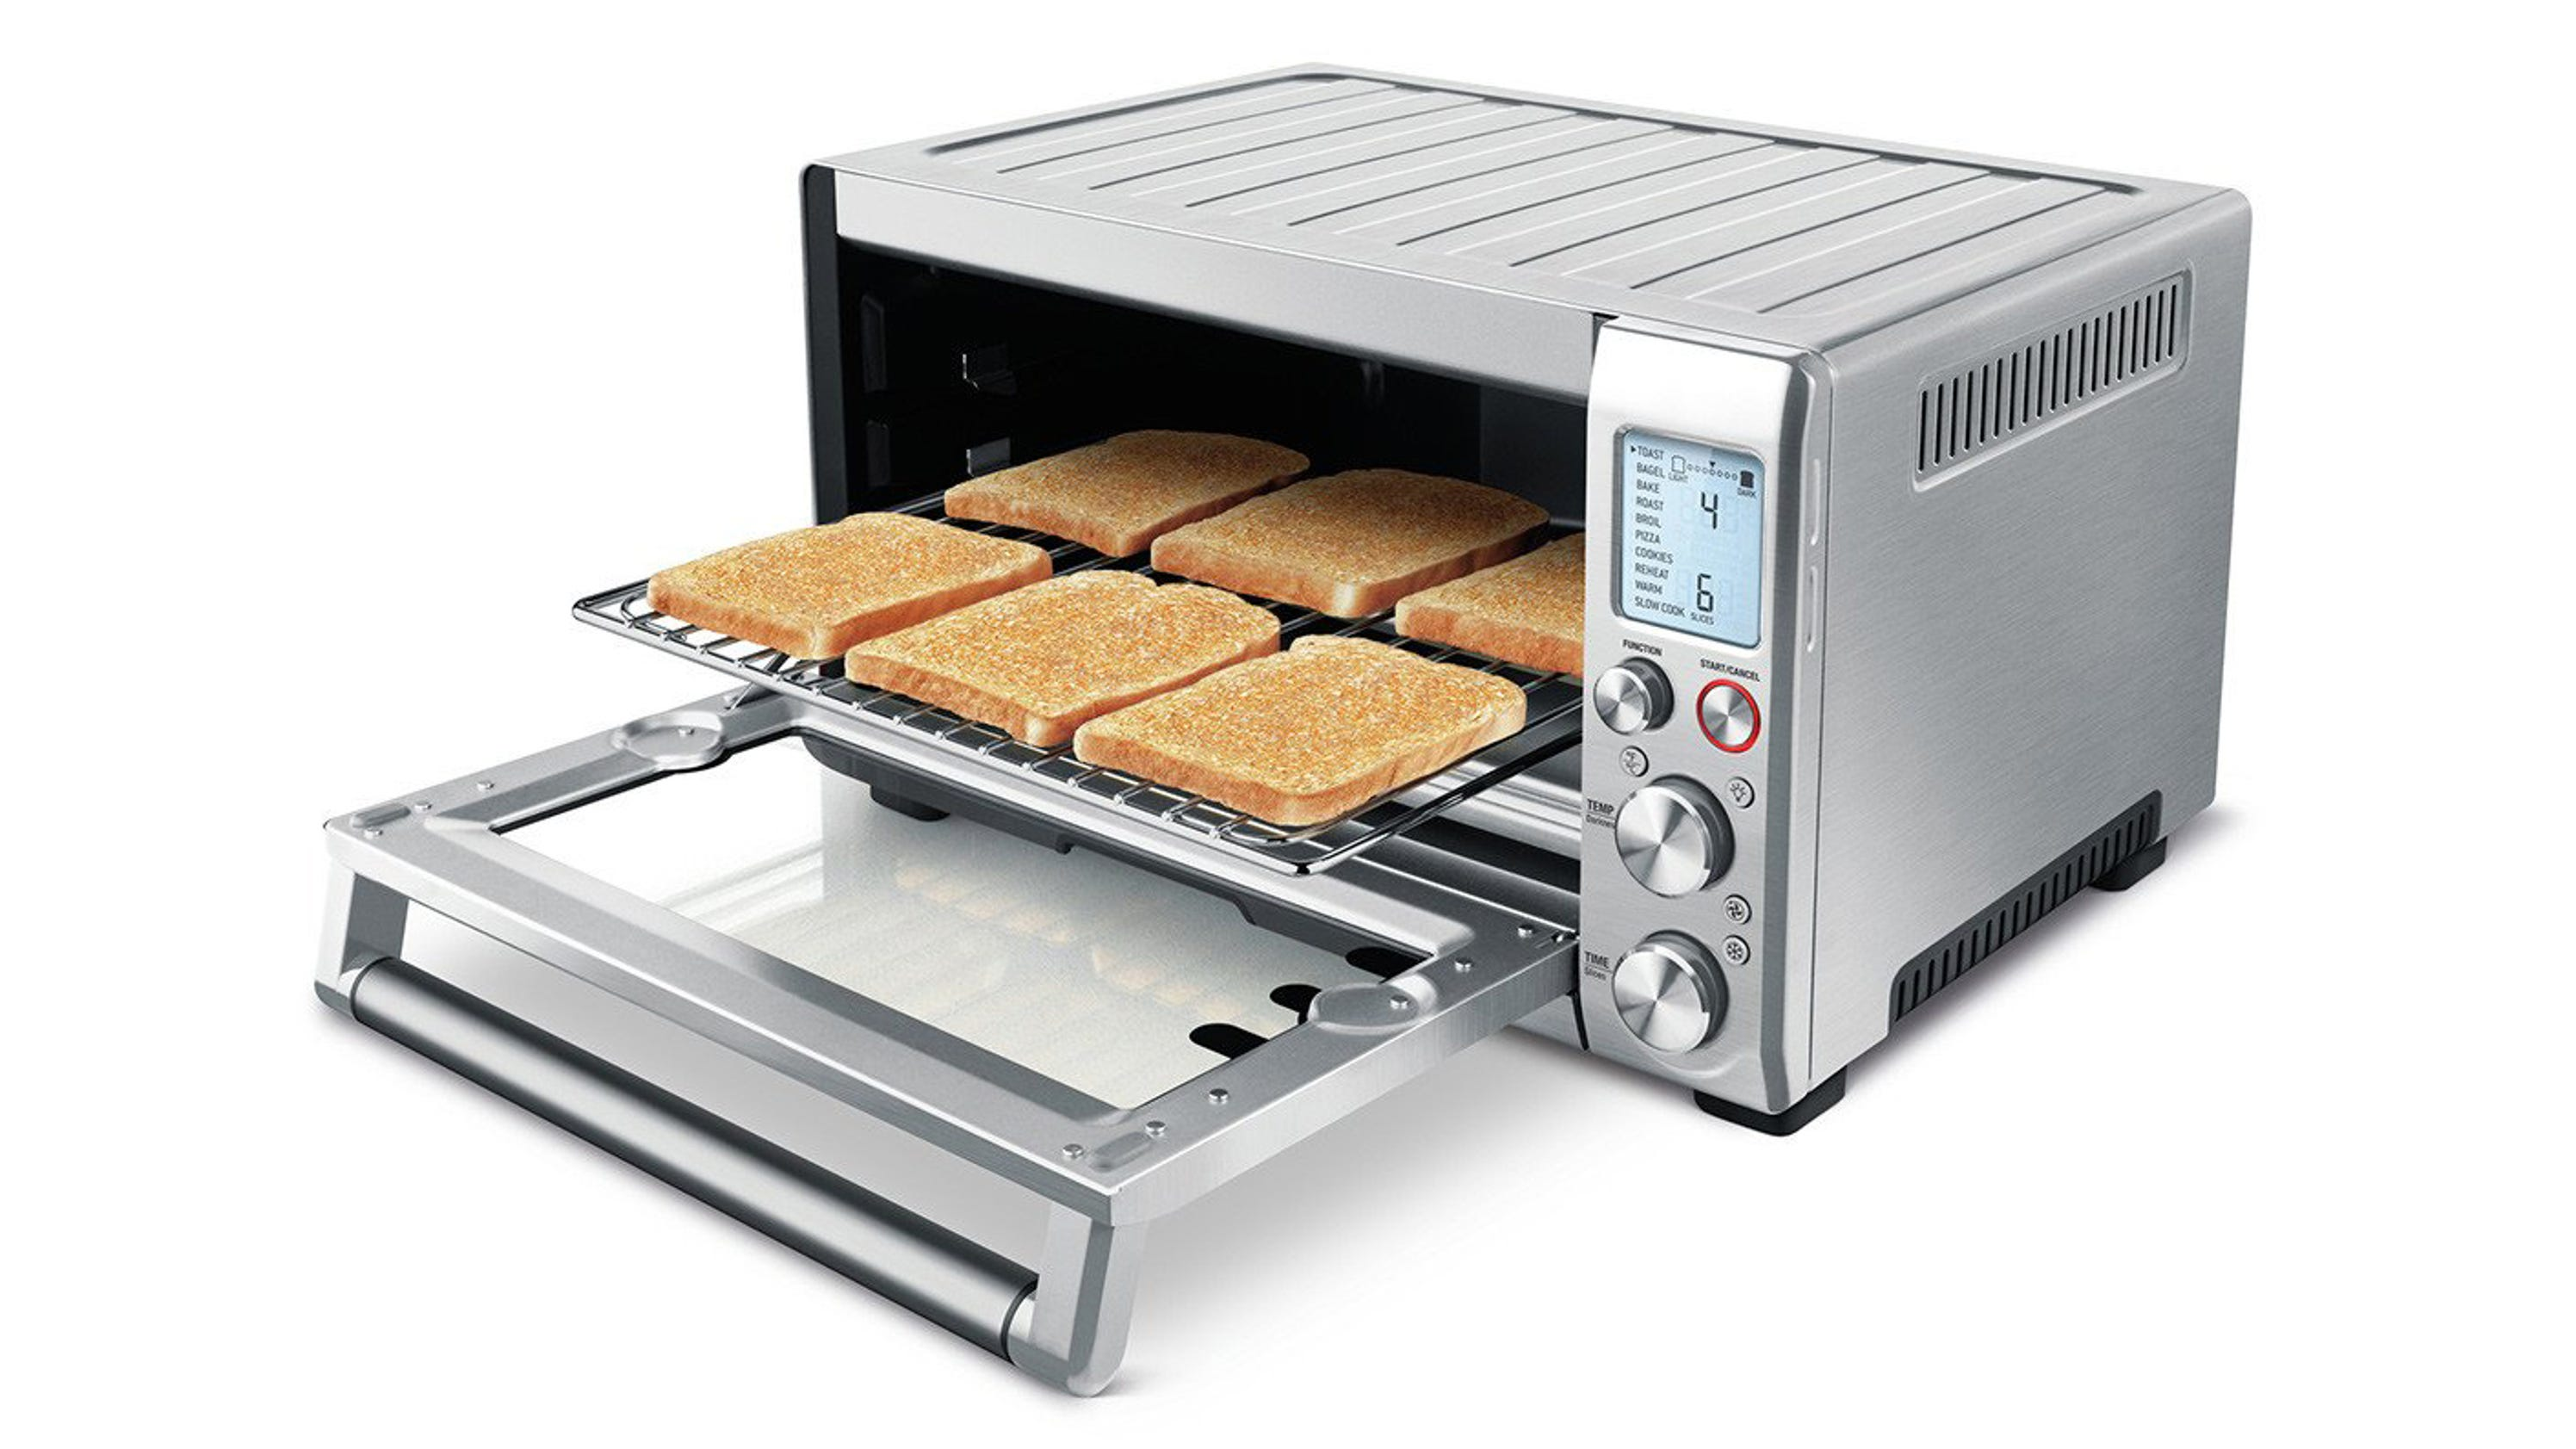 toaster oven product smart bed reg breville beyond store wid qlt bath convection pro hei